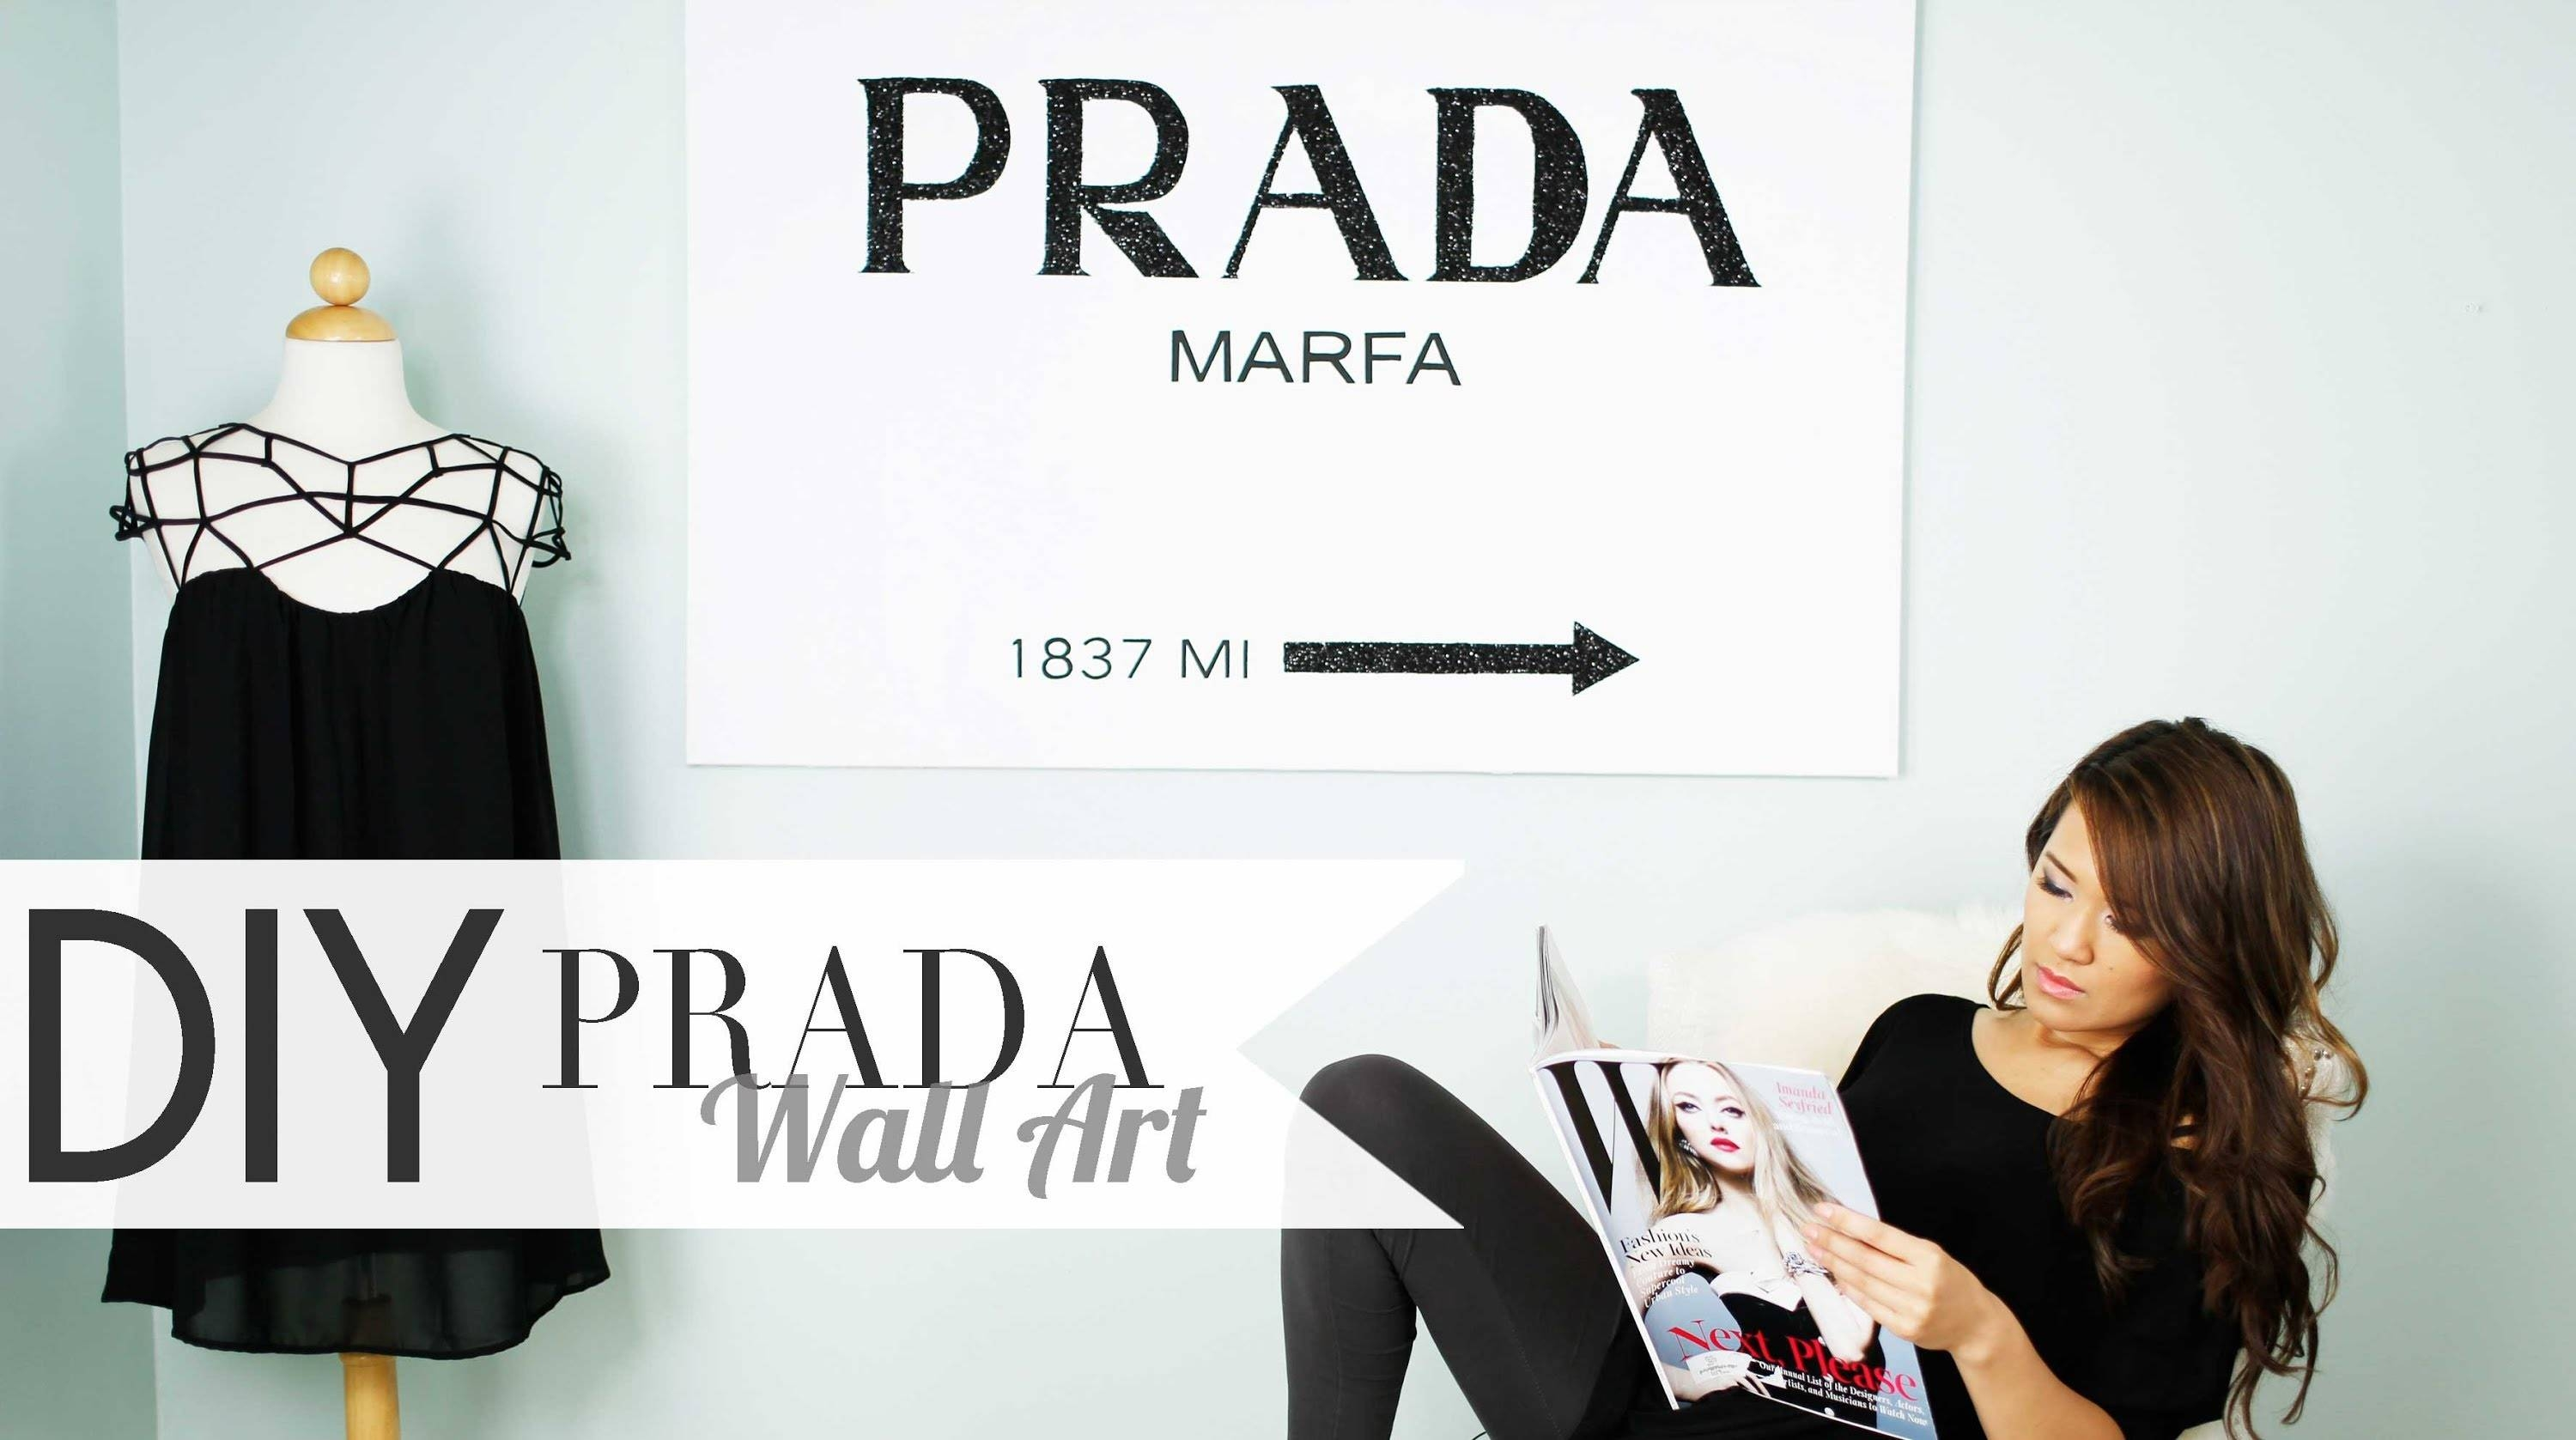 Diy Gossip Girl Prada Wall Art | Ann Le – Youtube With Best And Newest Prada Marfa Wall Art (Gallery 19 of 25)